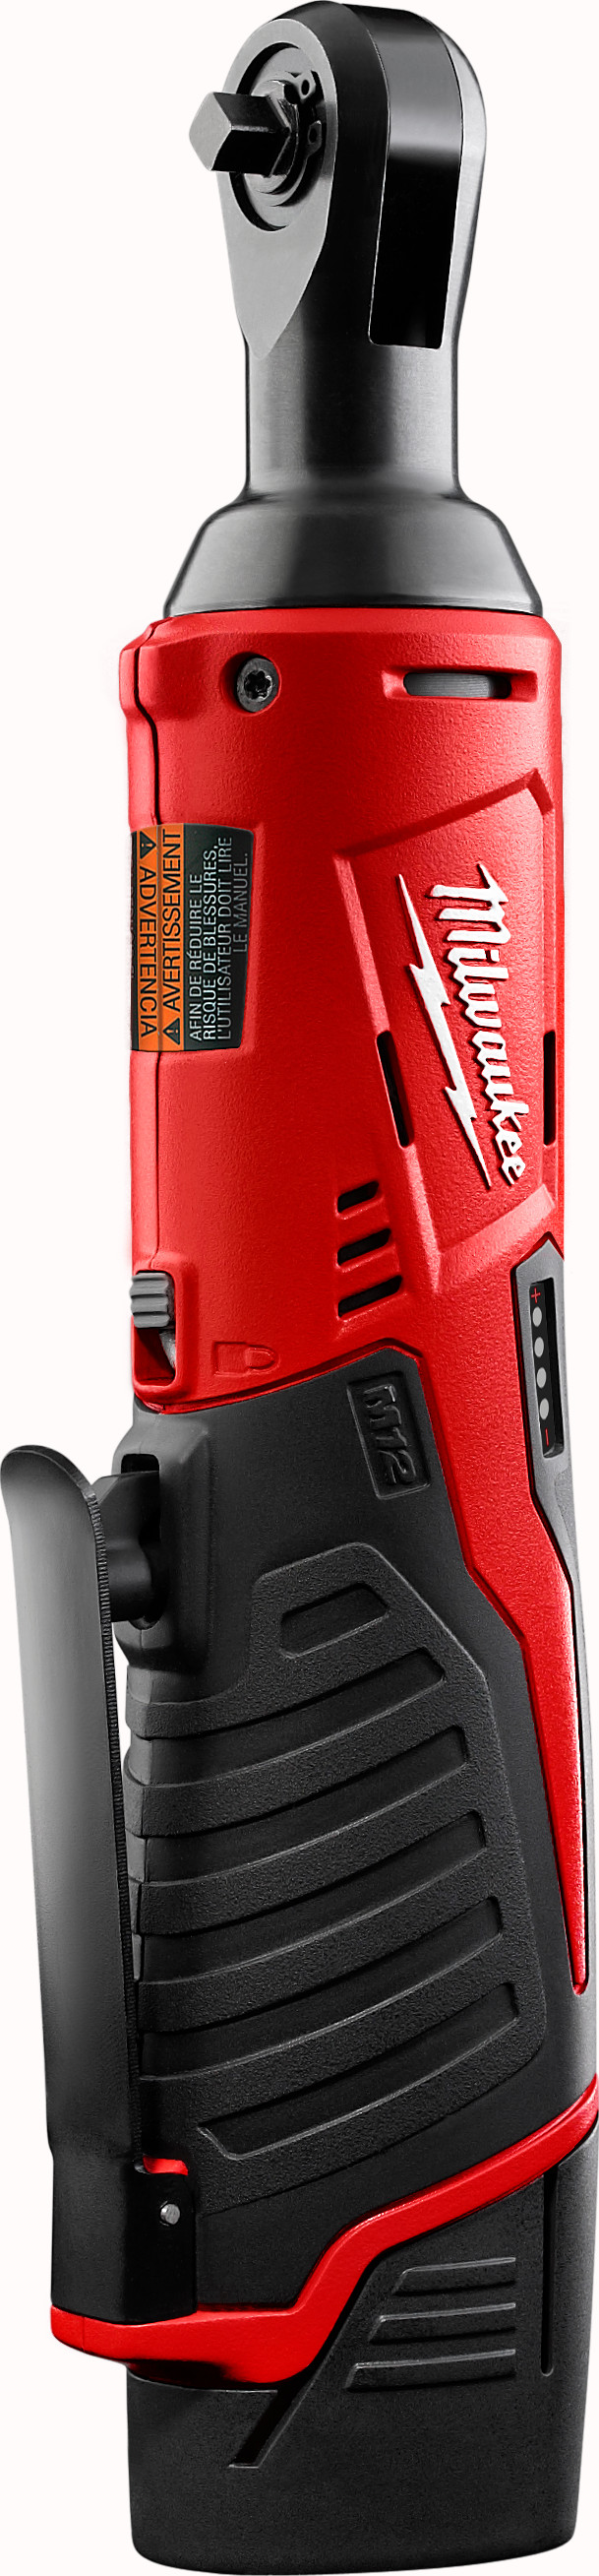 Milwaukee® 0799-20 M28™ Heavy Duty Cordless Impact Wrench, 7/16 in Hex Drive, 0 to 2450 bpm, 325 ft-lb Torque, 28 VDC, 11-3/4 in OAL, Tool Only